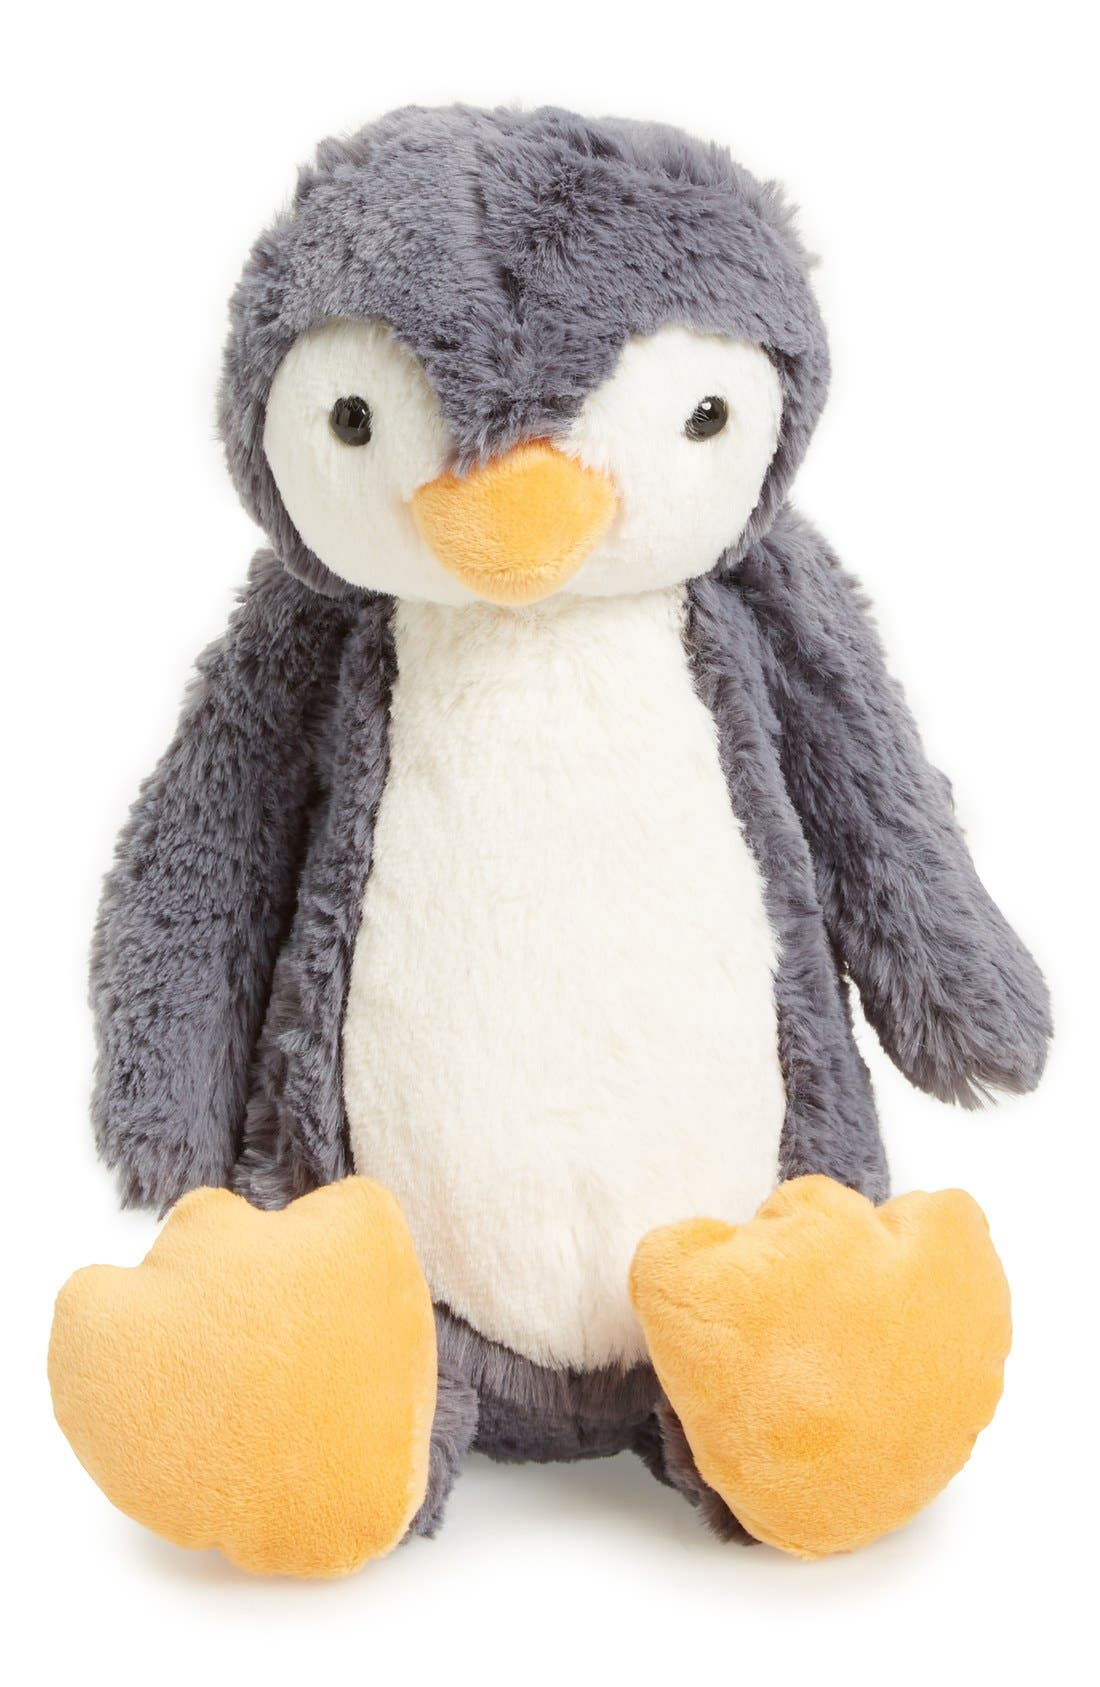 Alternate Image 1 Selected - Jellycat Medium Bashful Penguin Stuffed Animal